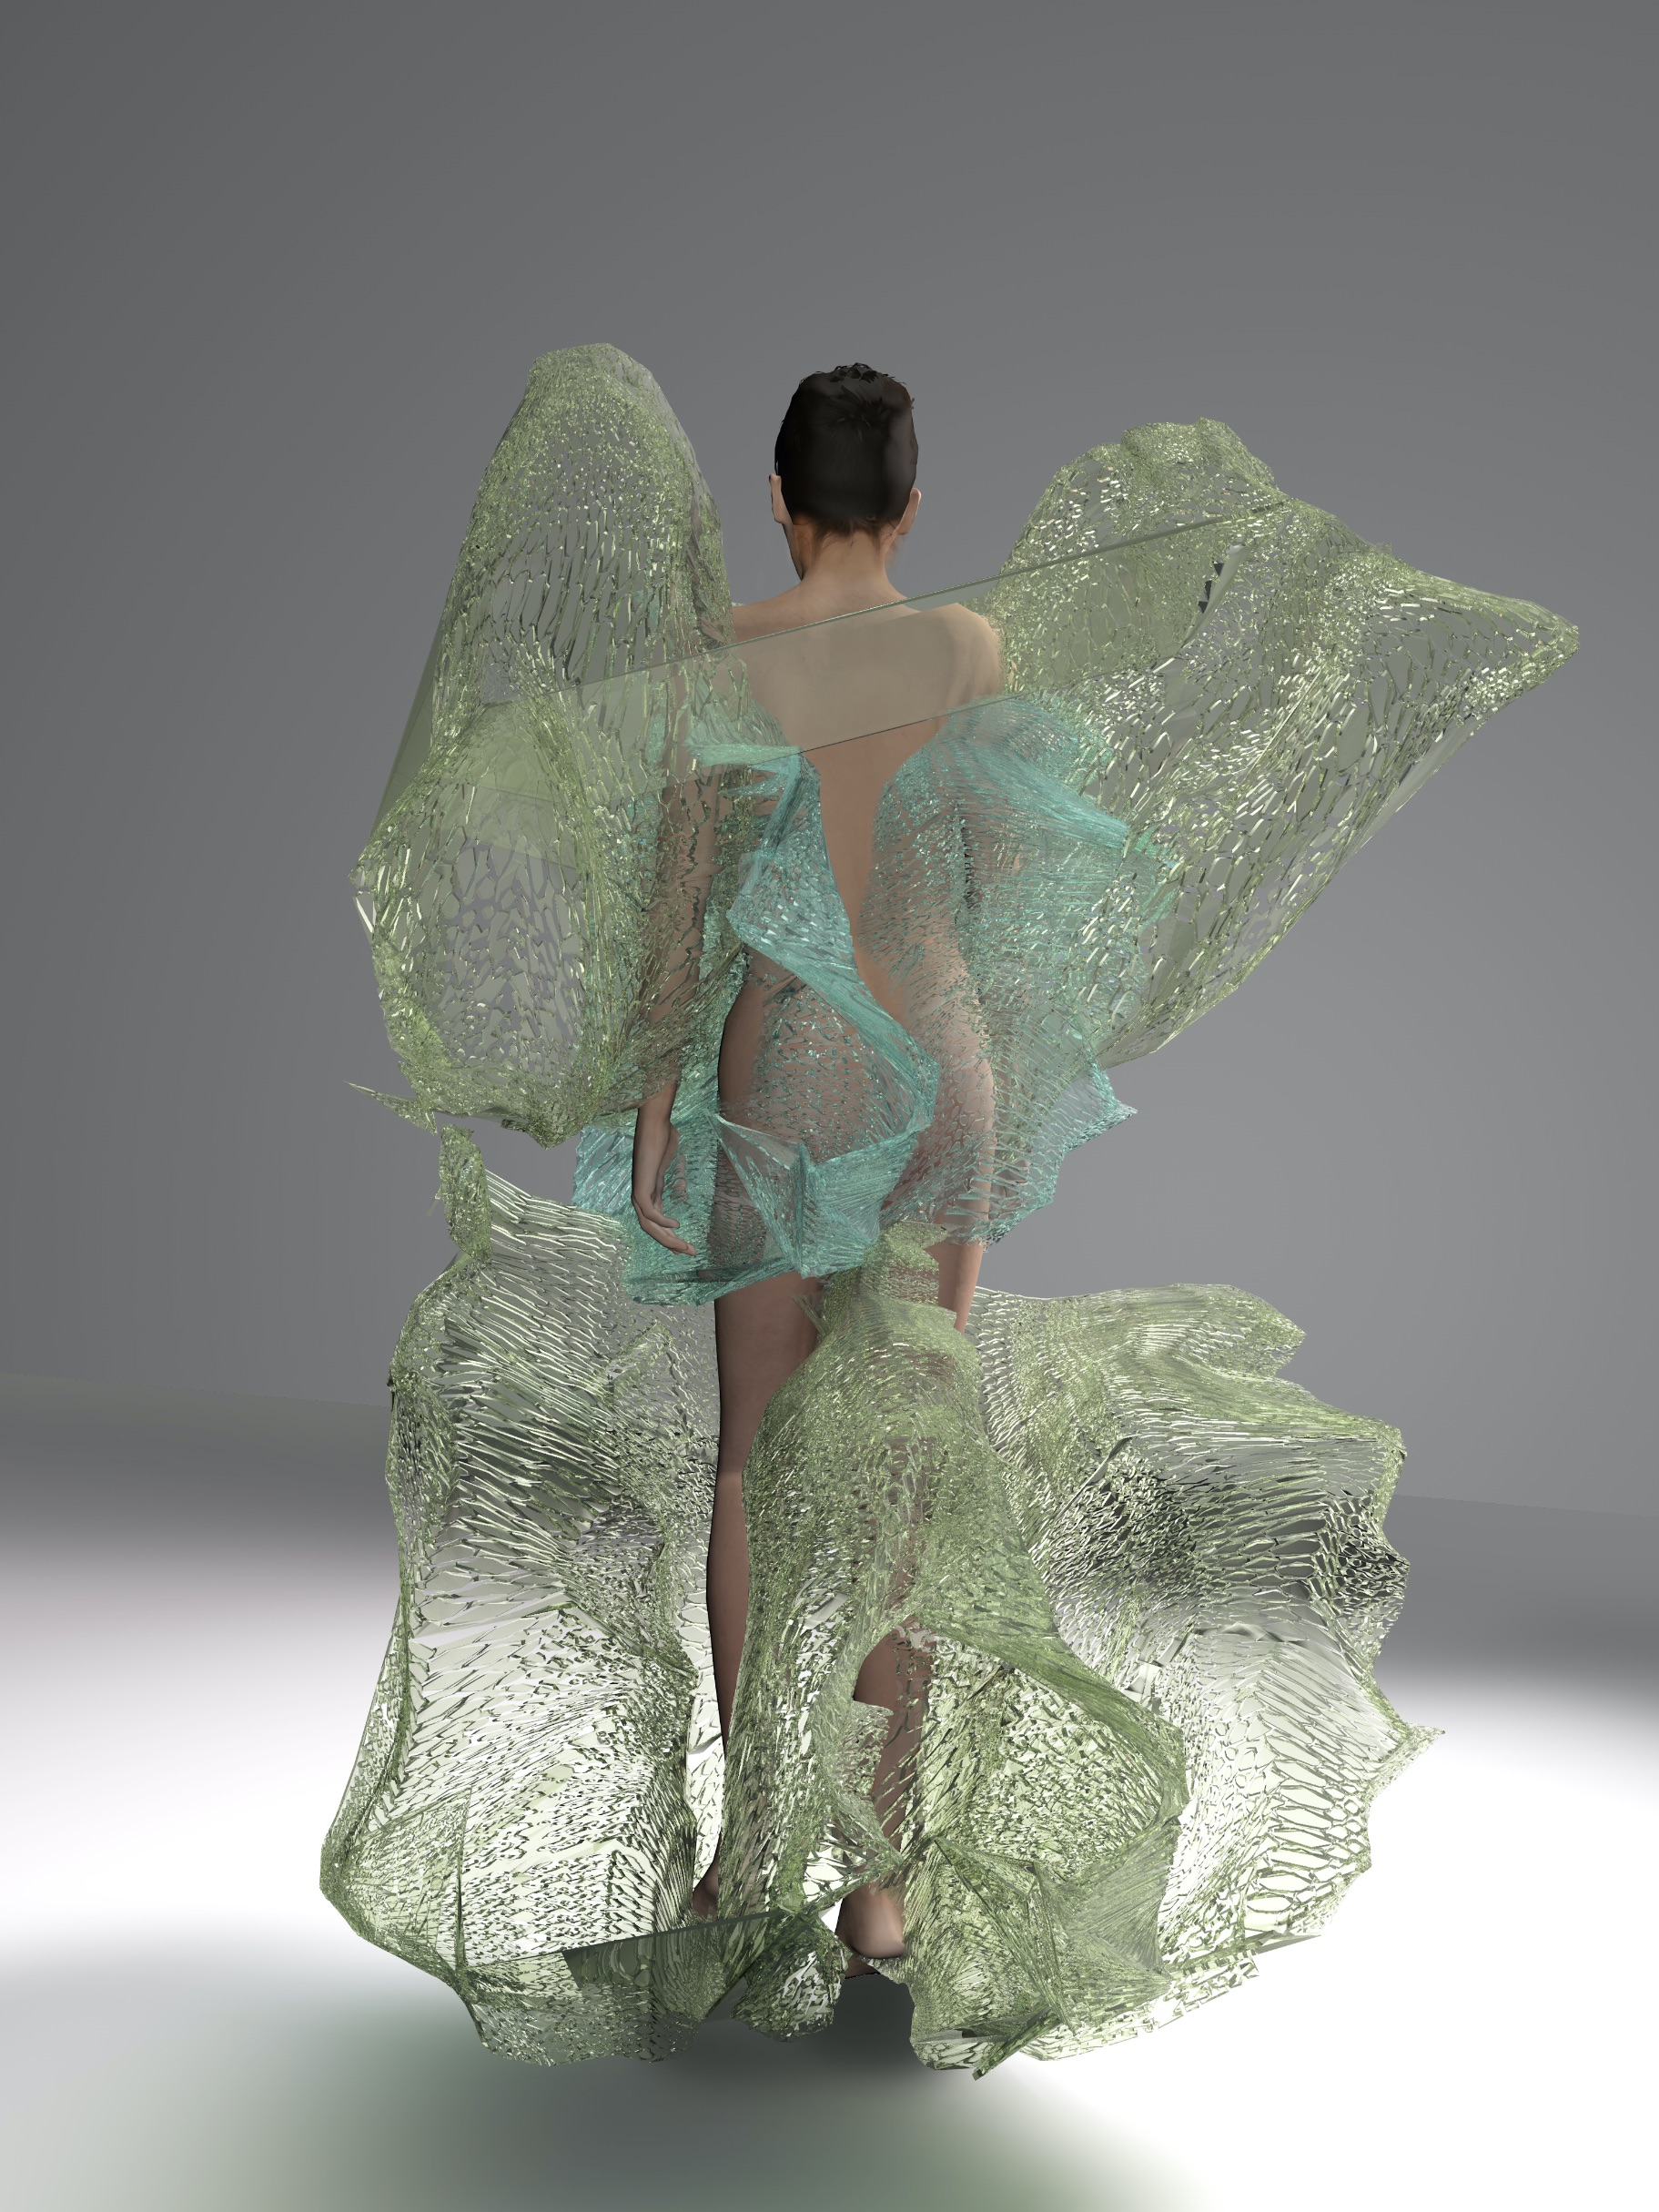 Scarlett Yang envisions clothes as a circular living system